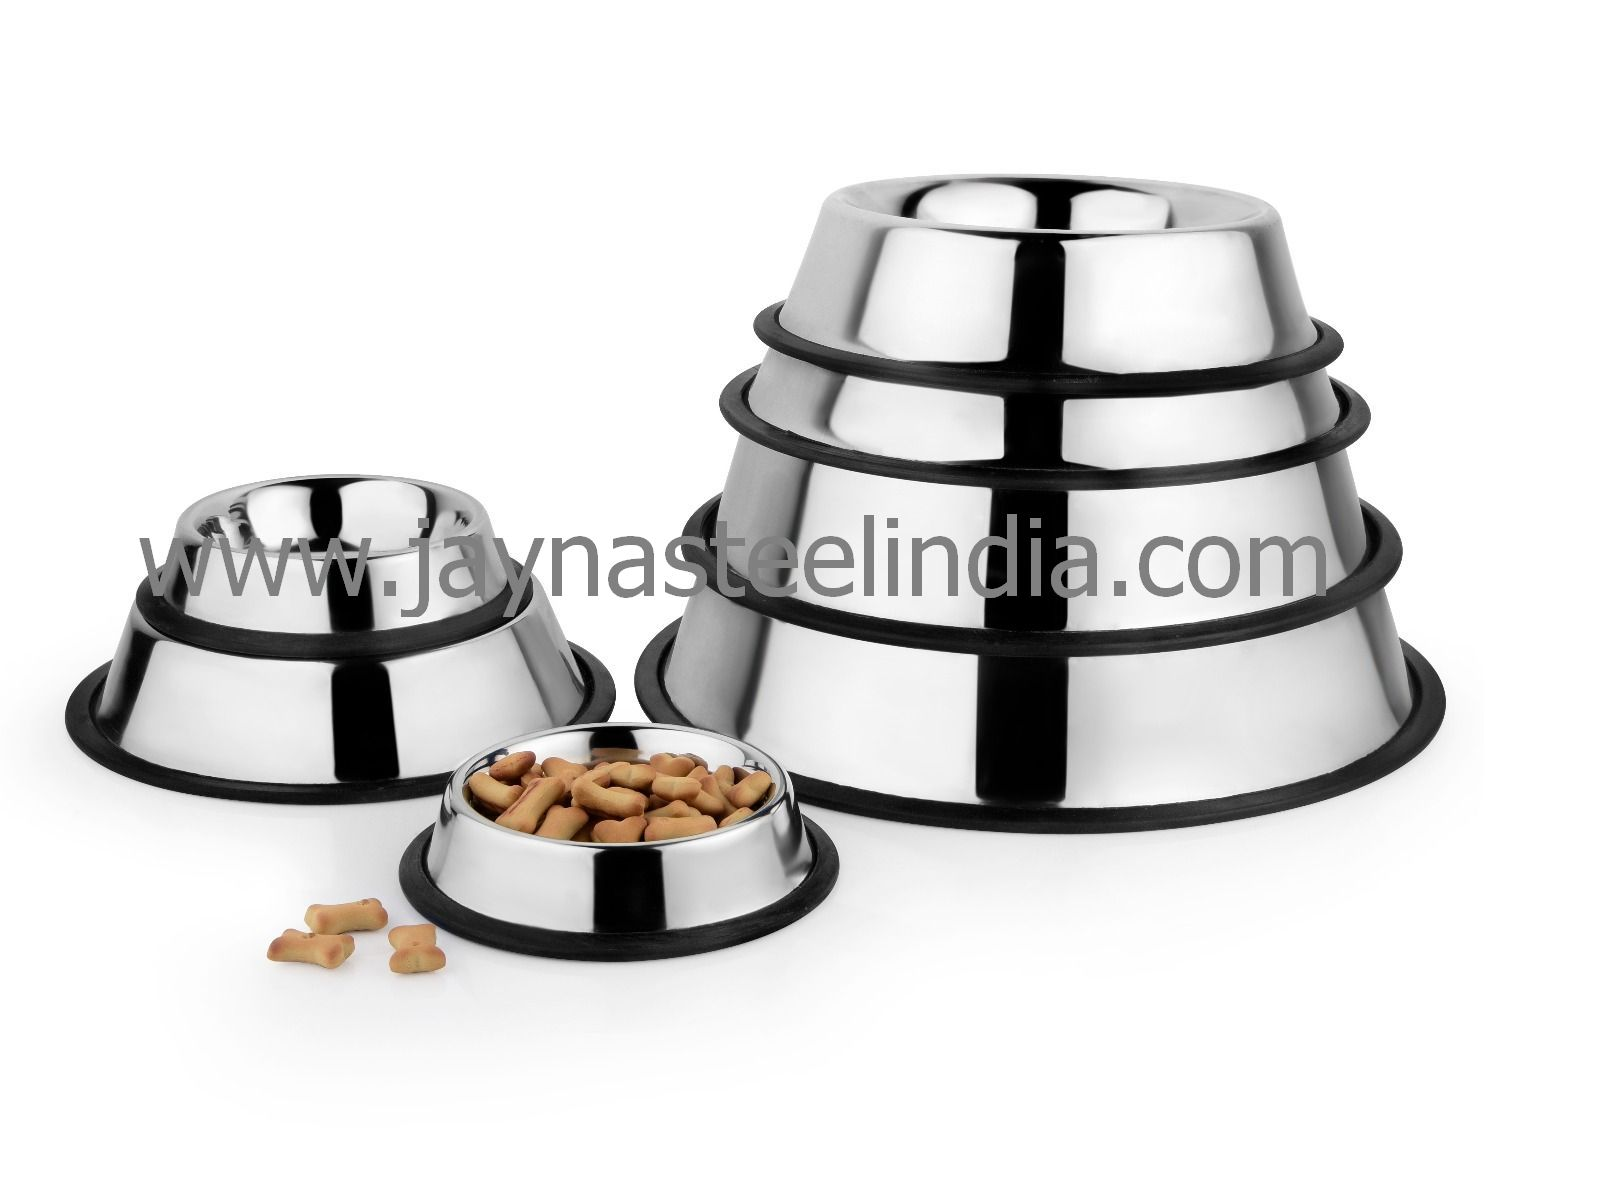 Stainless steel anti skid non tip dog bowl with rubber base